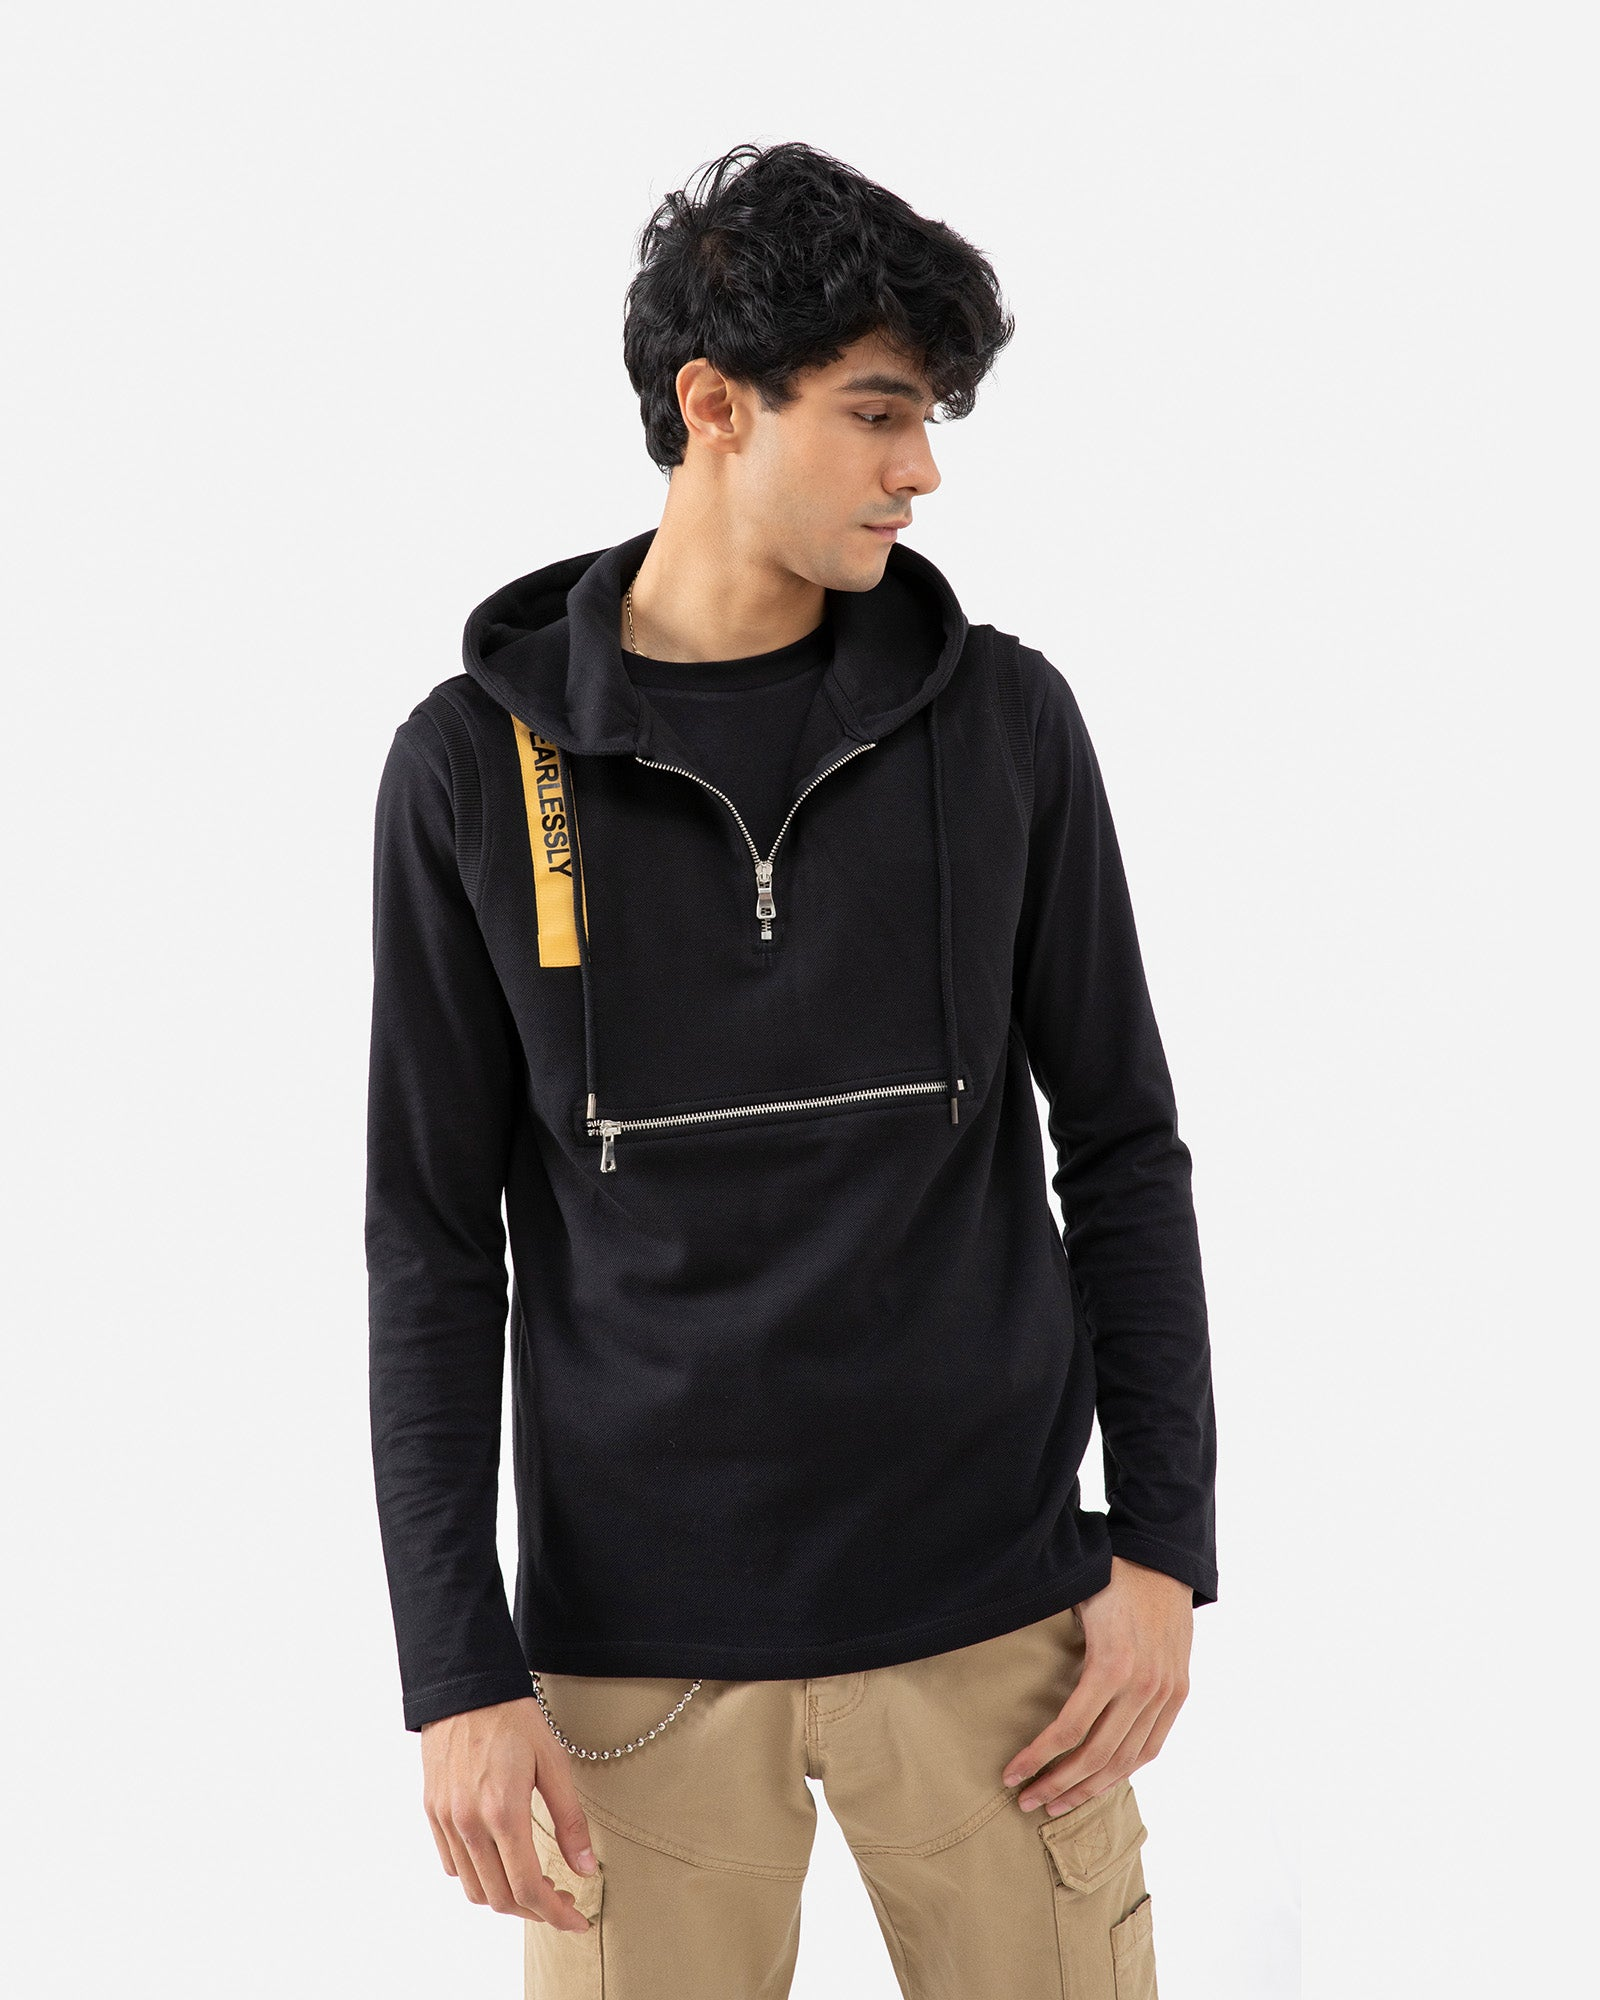 Hoodie with a Zipper Pouch Pocket